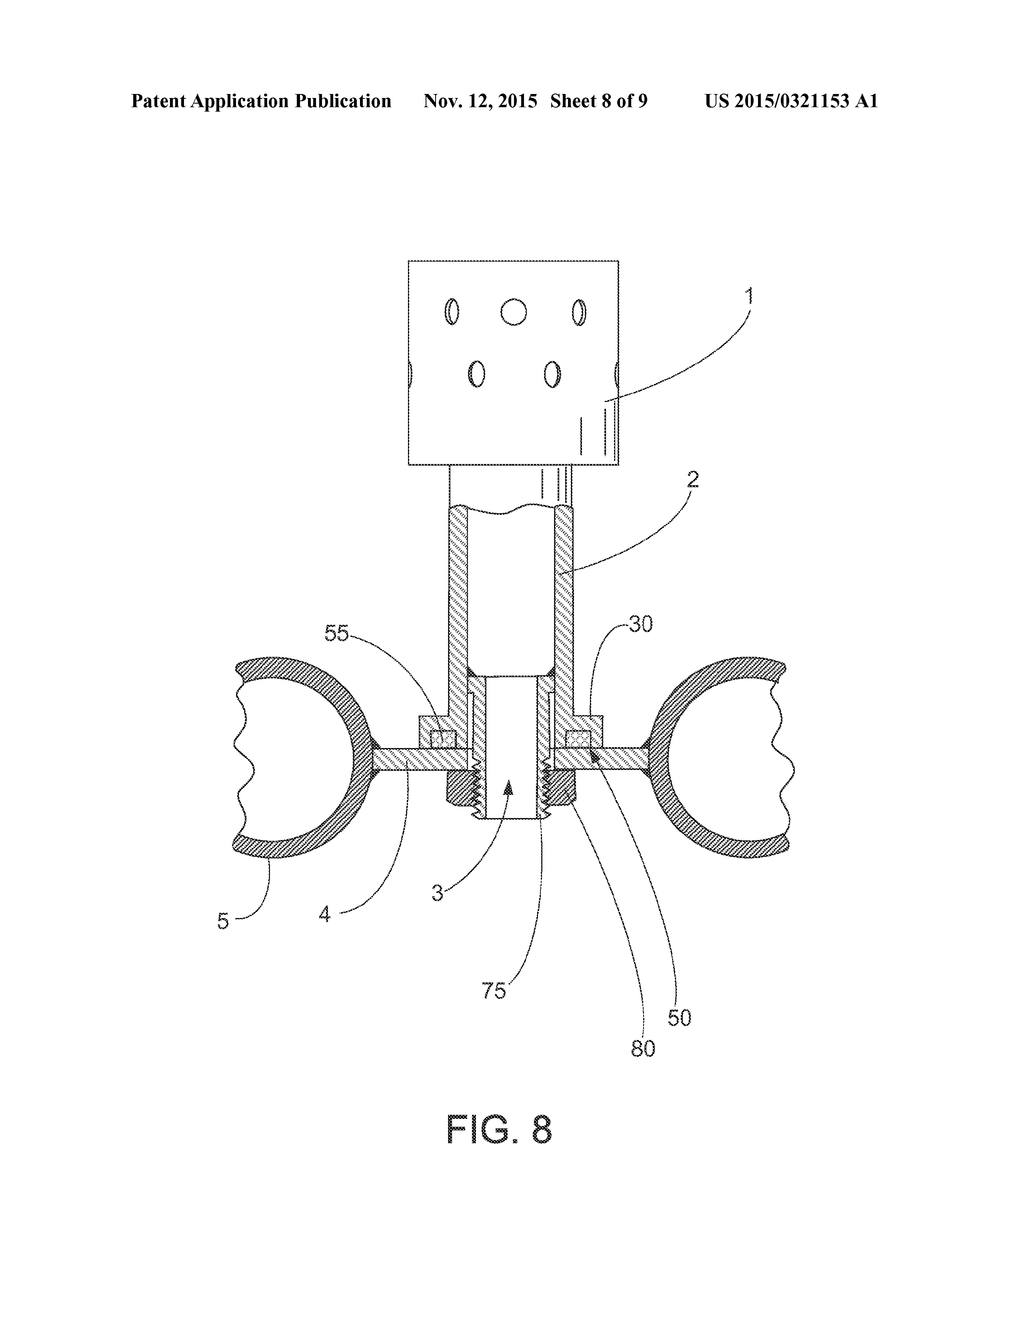 20150321153_09 fluidizing nozzle or bubble cap assembly for air distribution grid